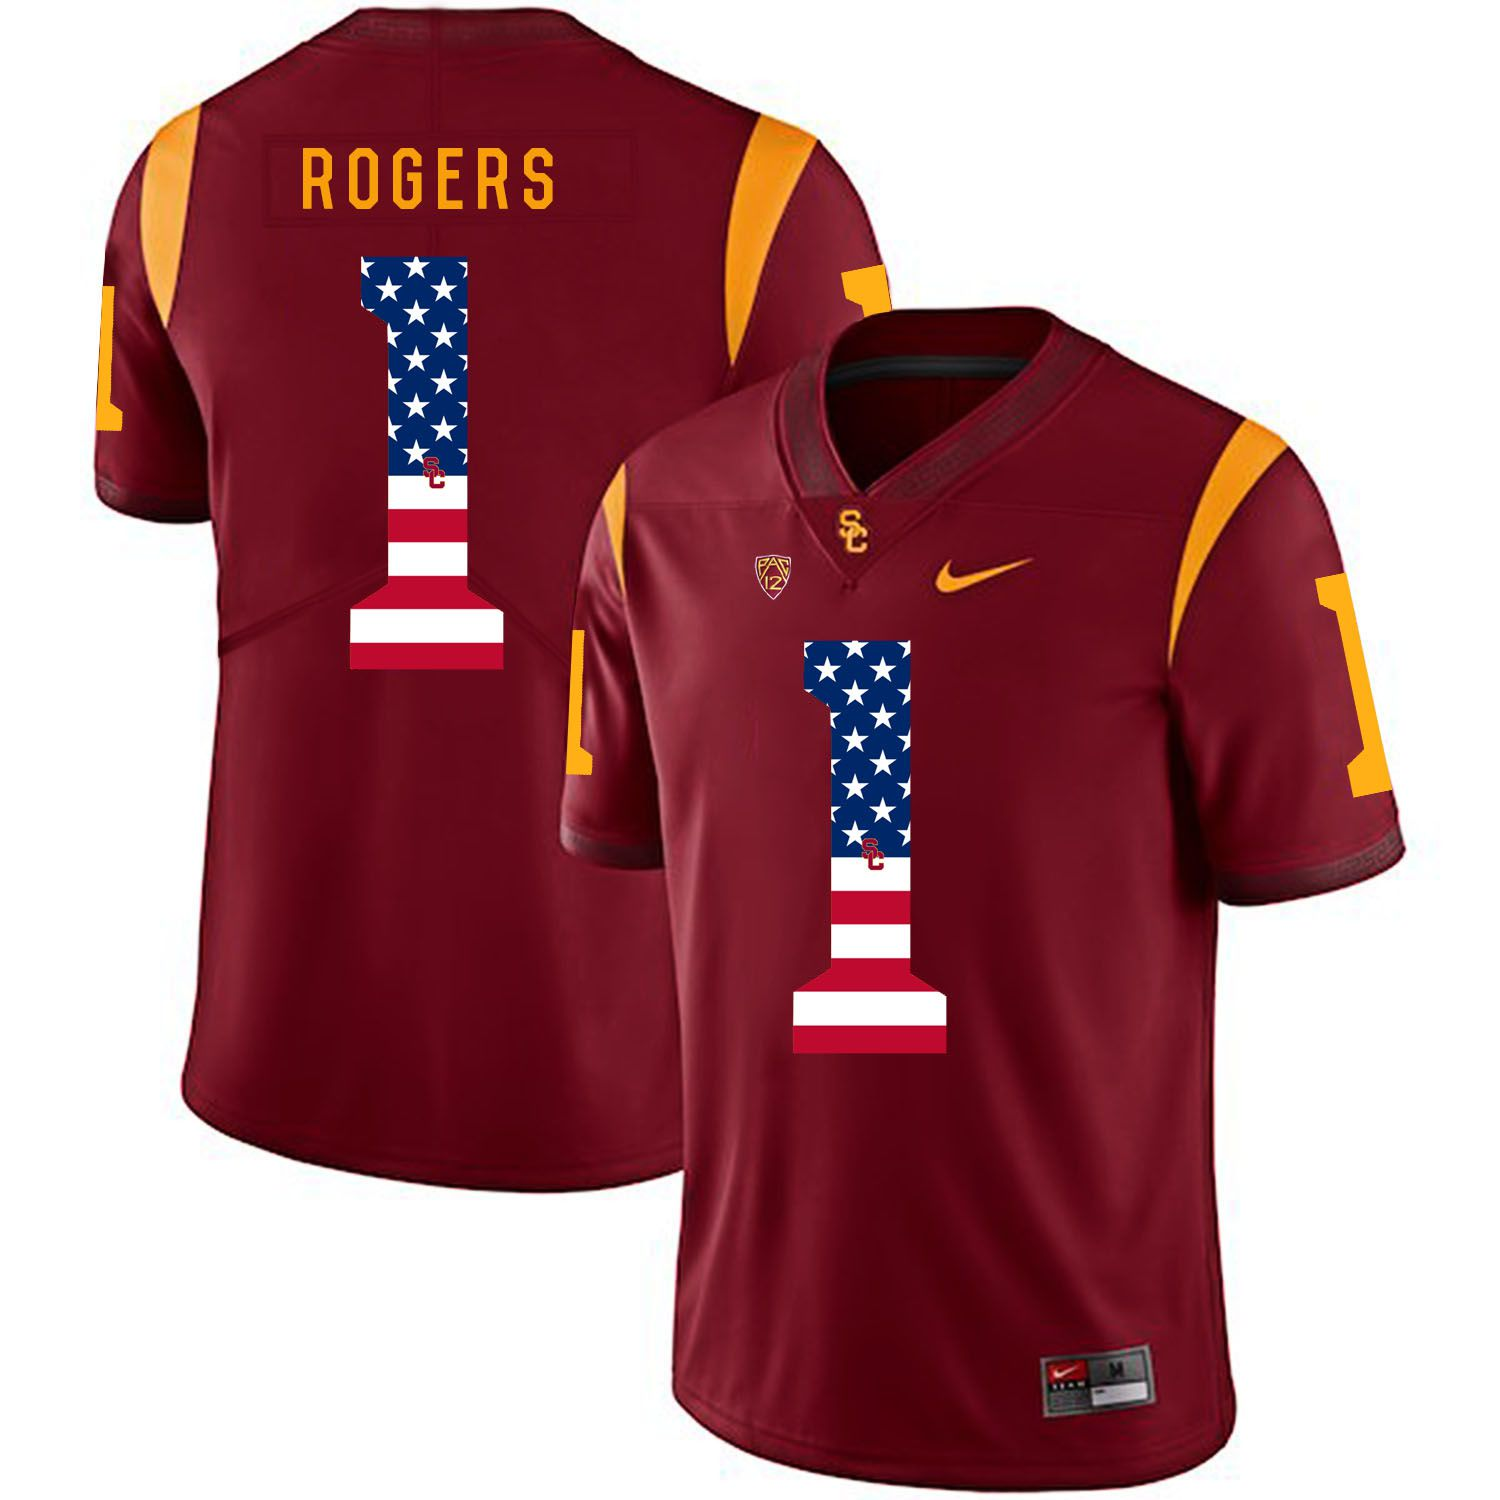 Men USC Trojans 1 Rogers Red Flag Customized NCAA Jerseys